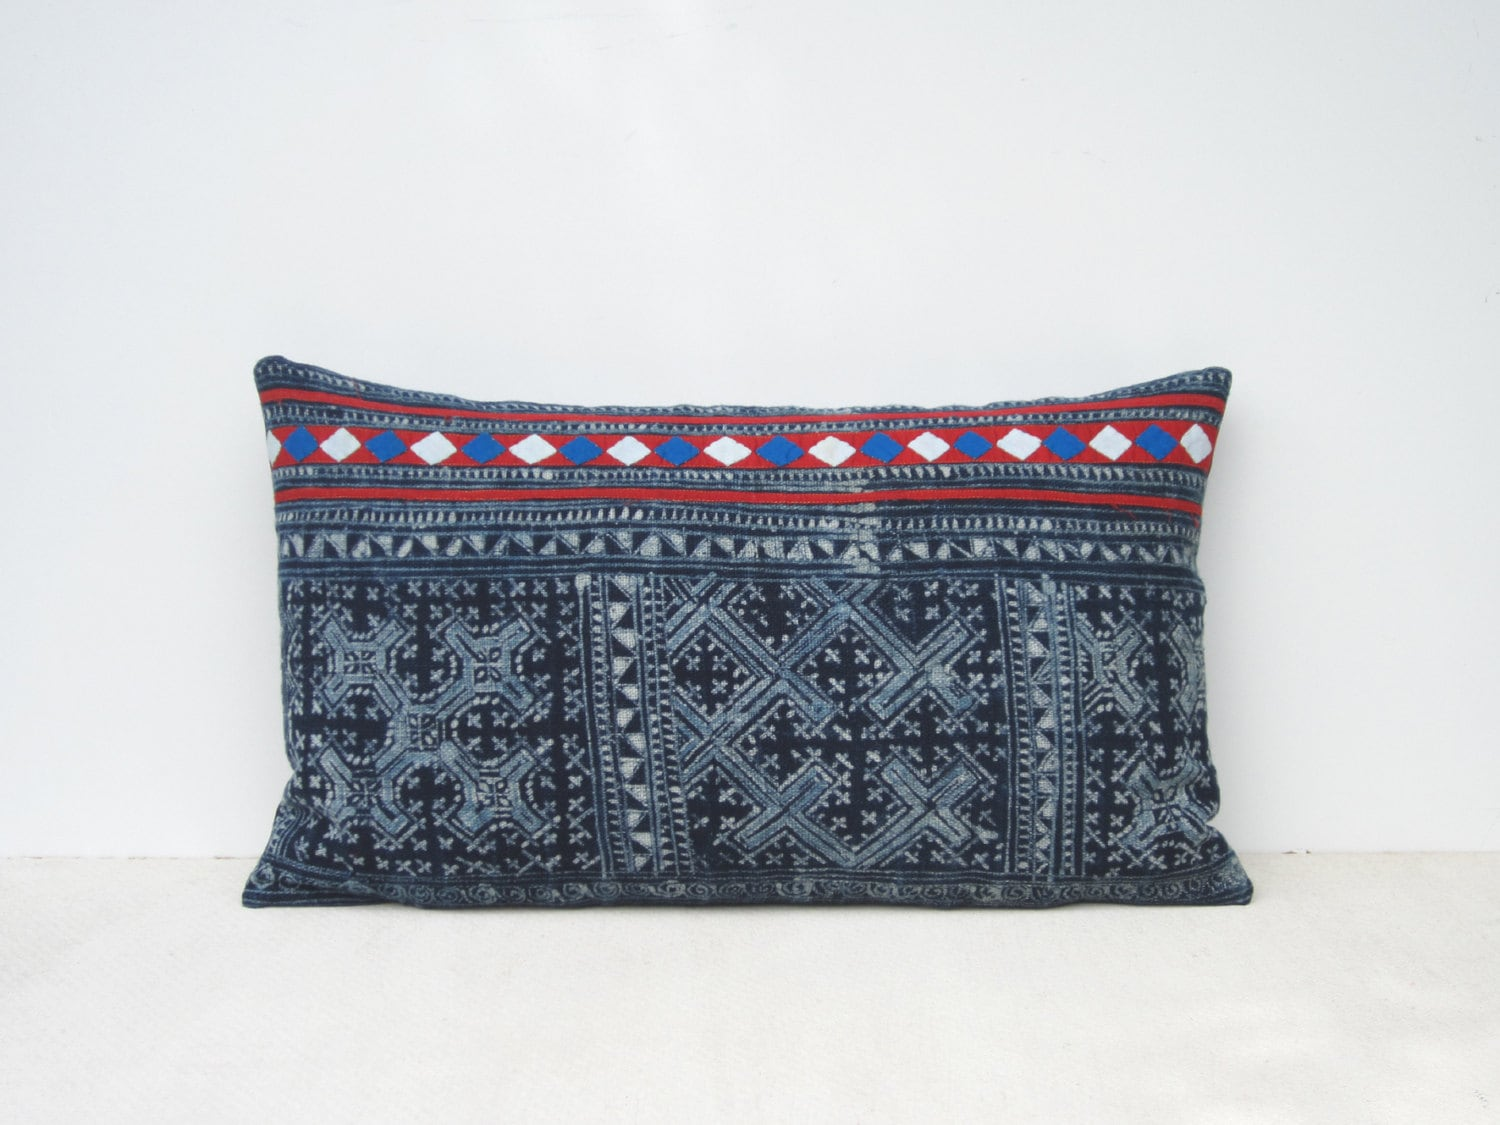 Vintage indigo blue batik and embroidered Hmong textile cushion cover 12x20 - frompastopresent